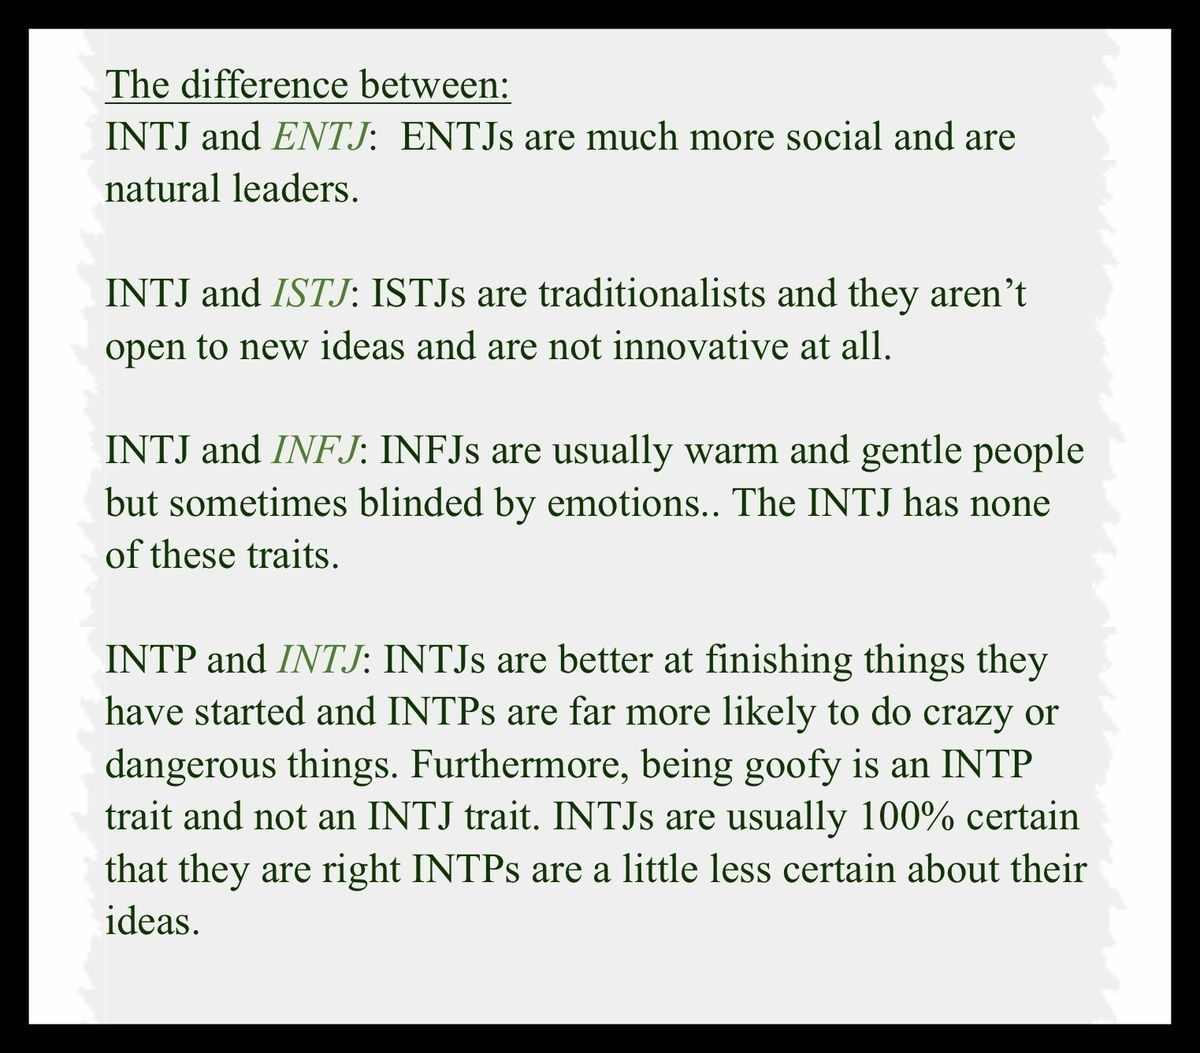 Differences INTJ vs ENTJ, INTJ vs ISTJ, INTJ vs INFJ, INTP